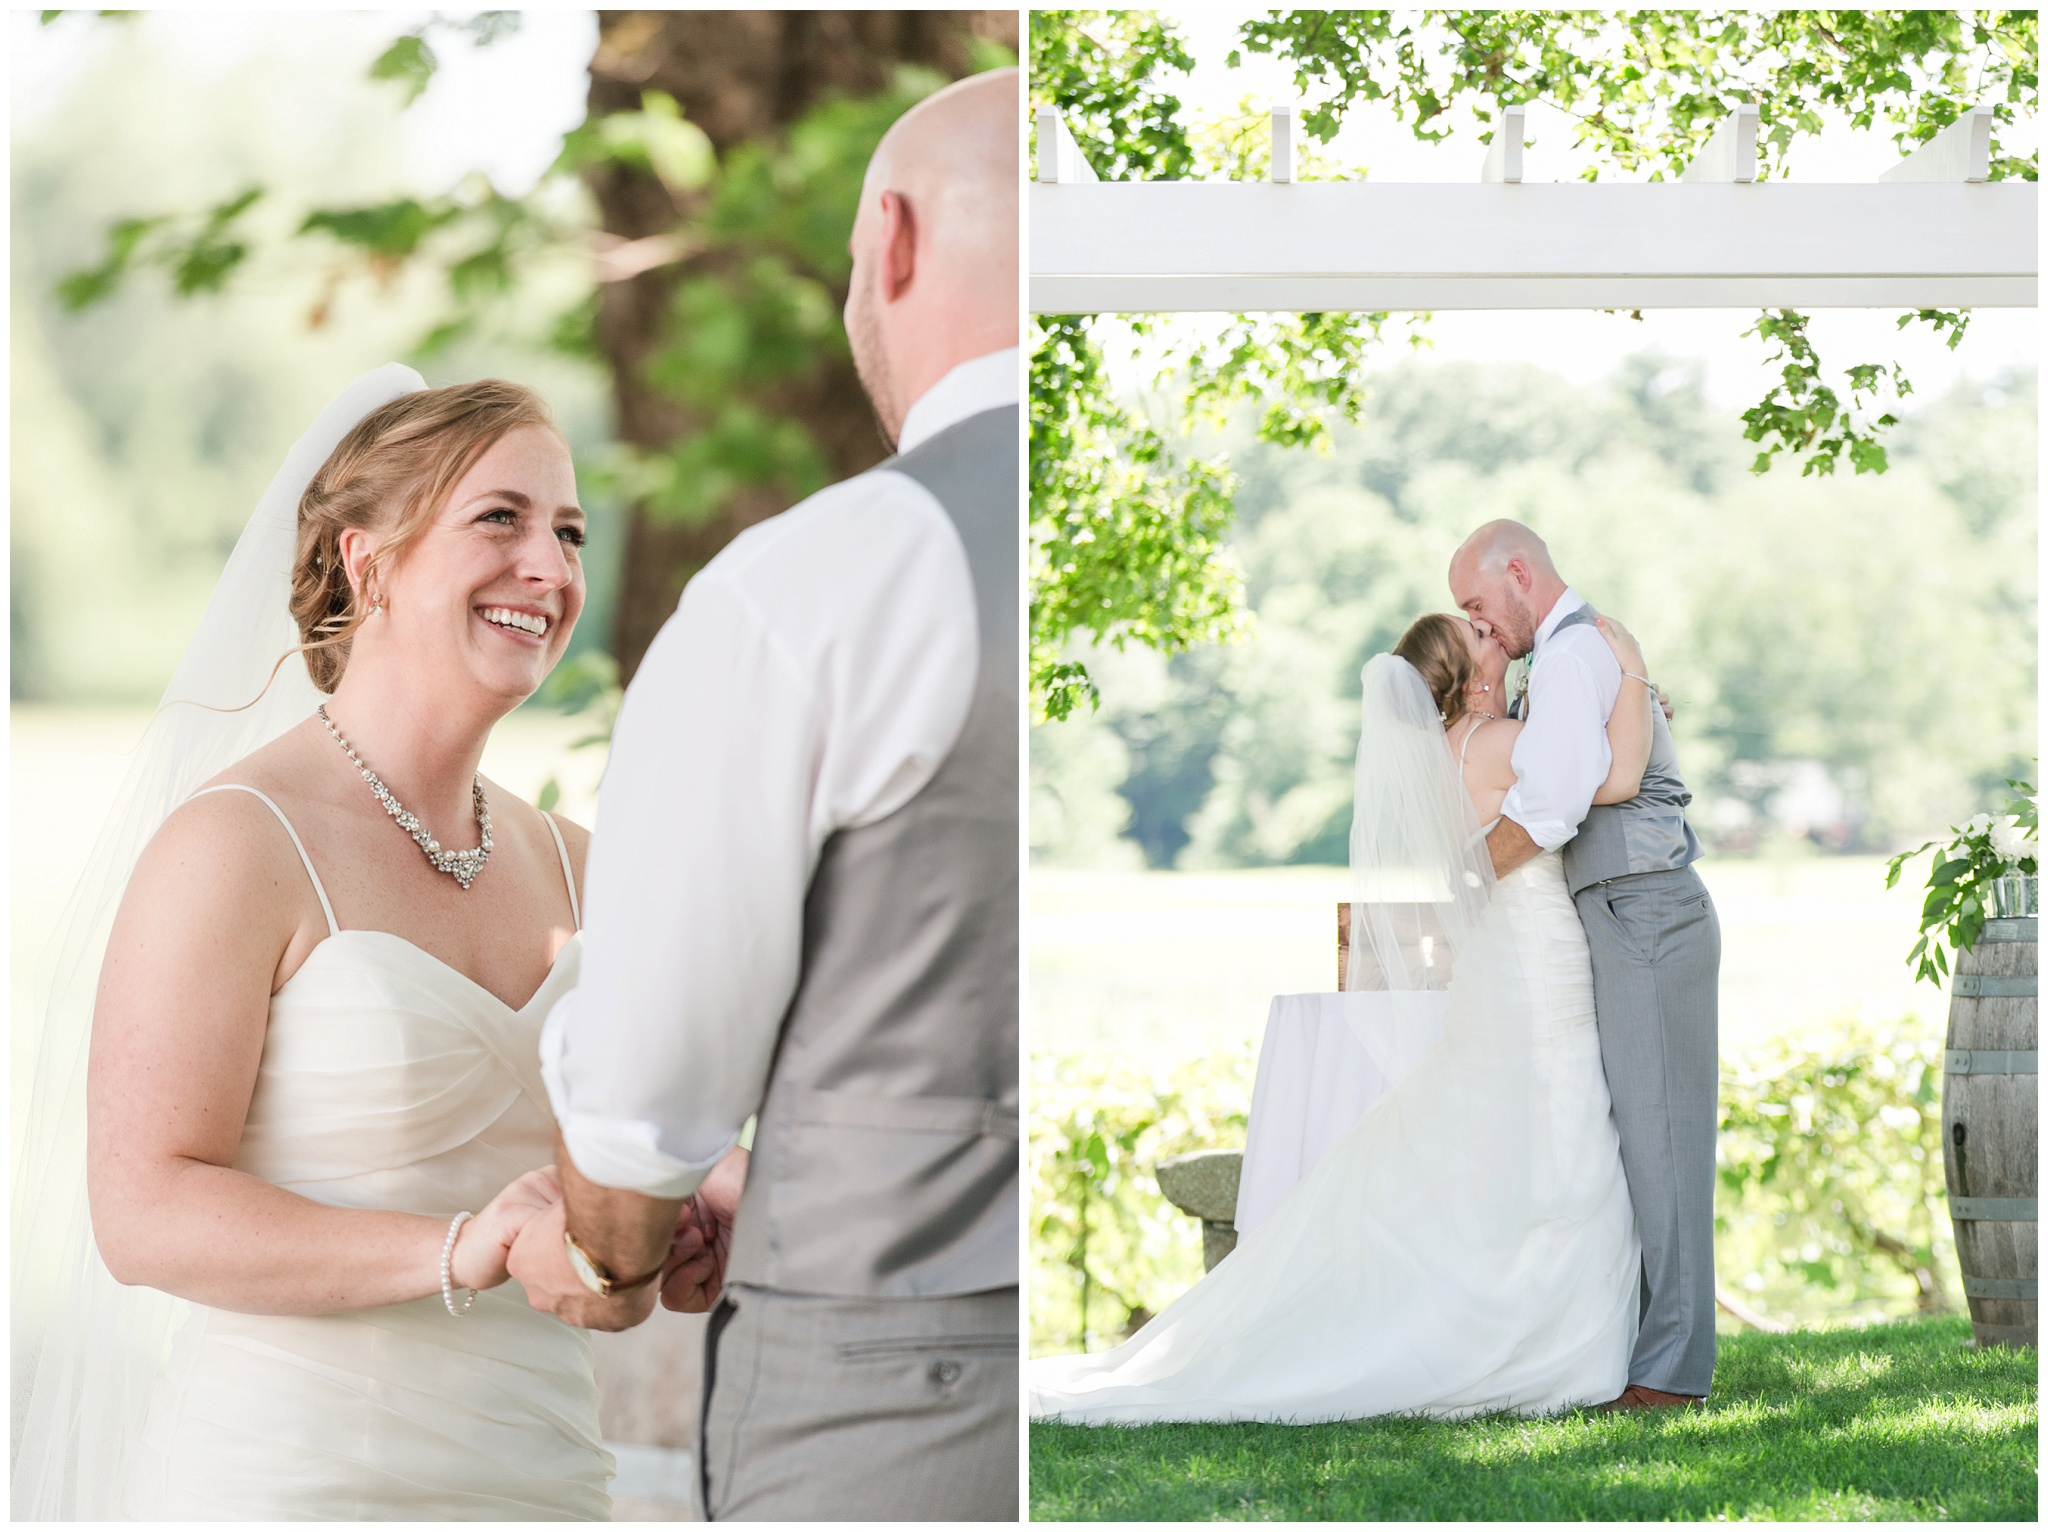 New Hampshire Wedding Photographer | Flag Hill Winery | June Vineyard Wedding | Amy Brown Photography